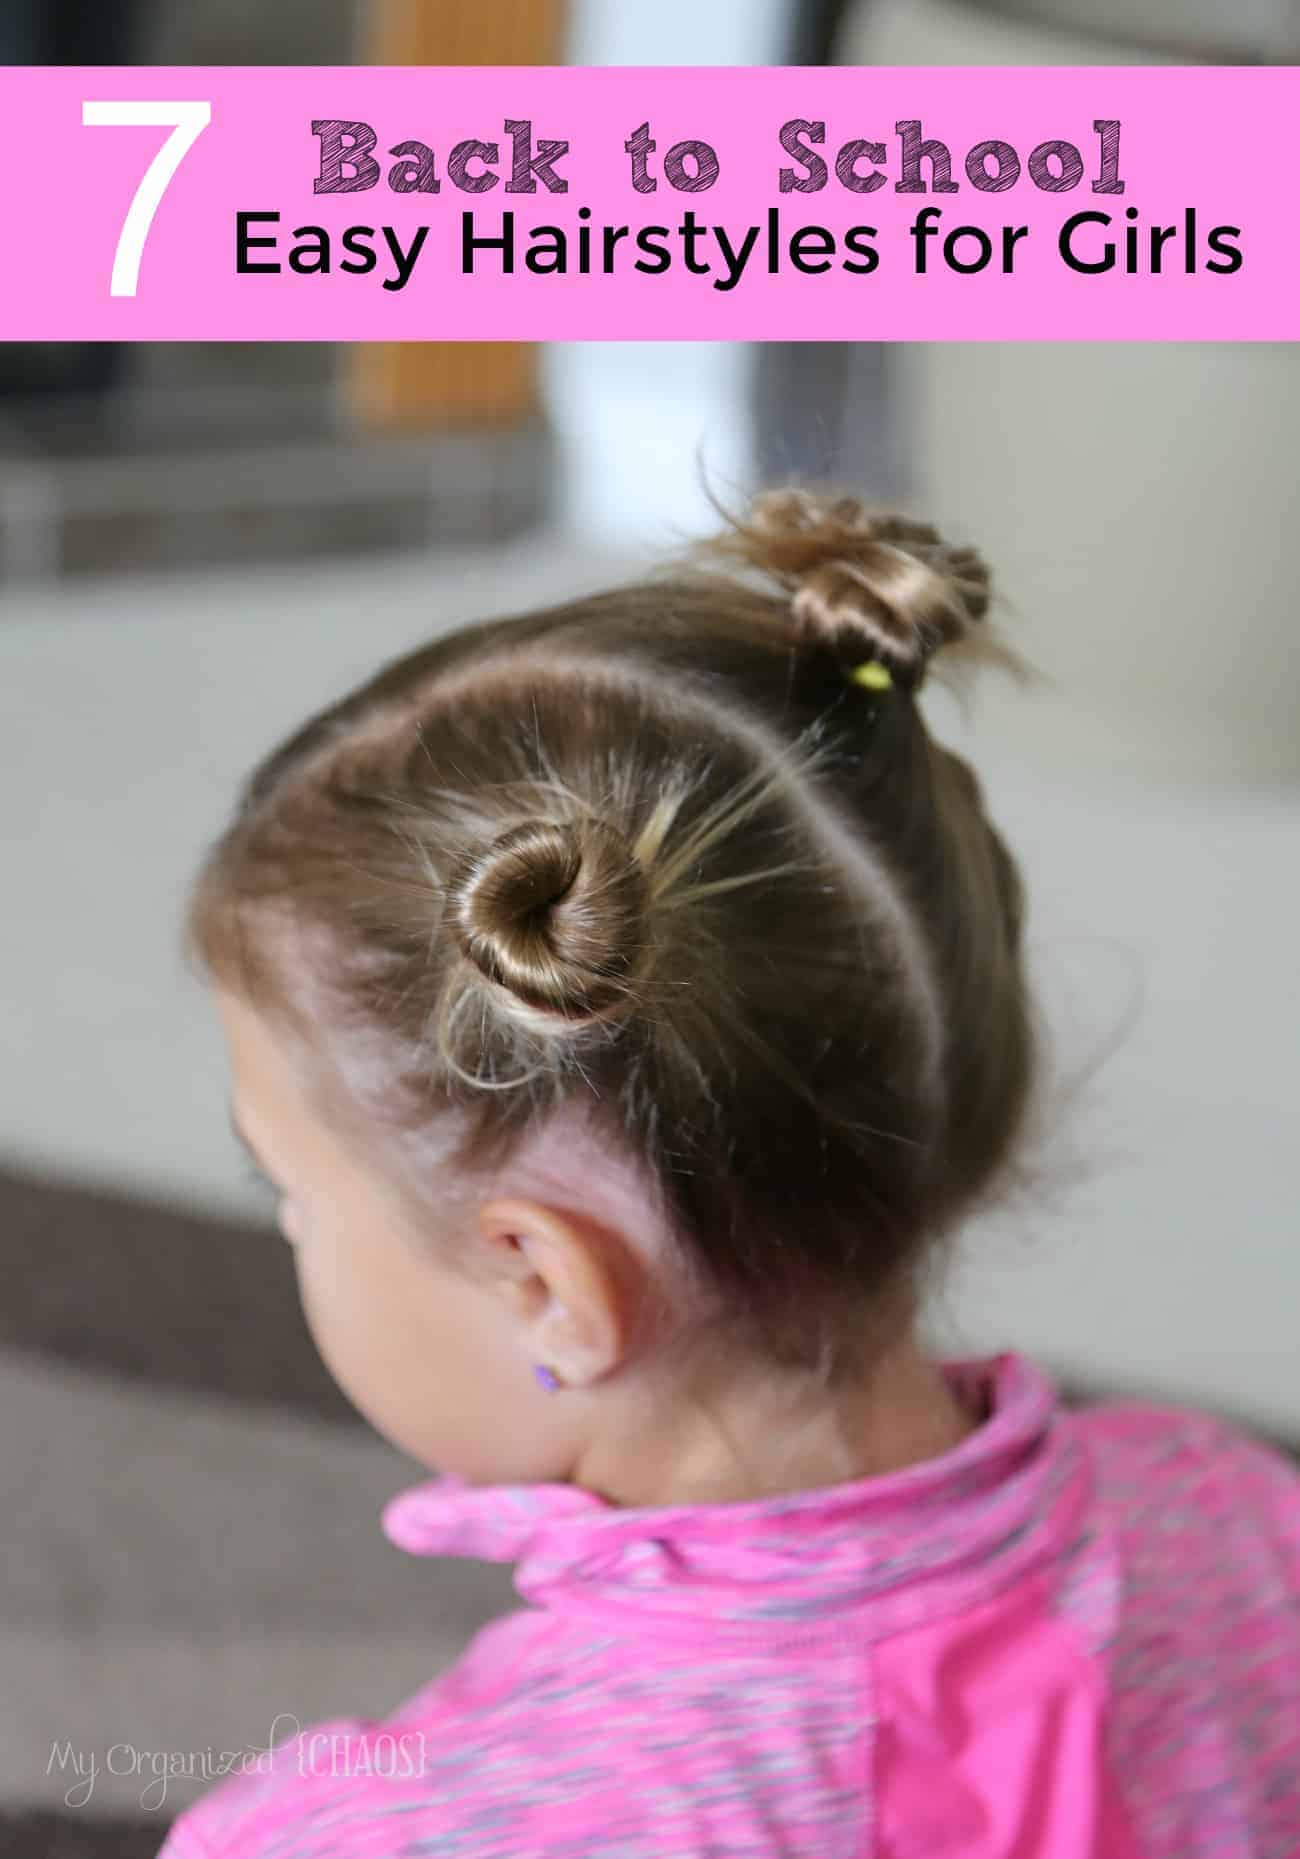 7 Back to School Easy Hairstyles for Girls